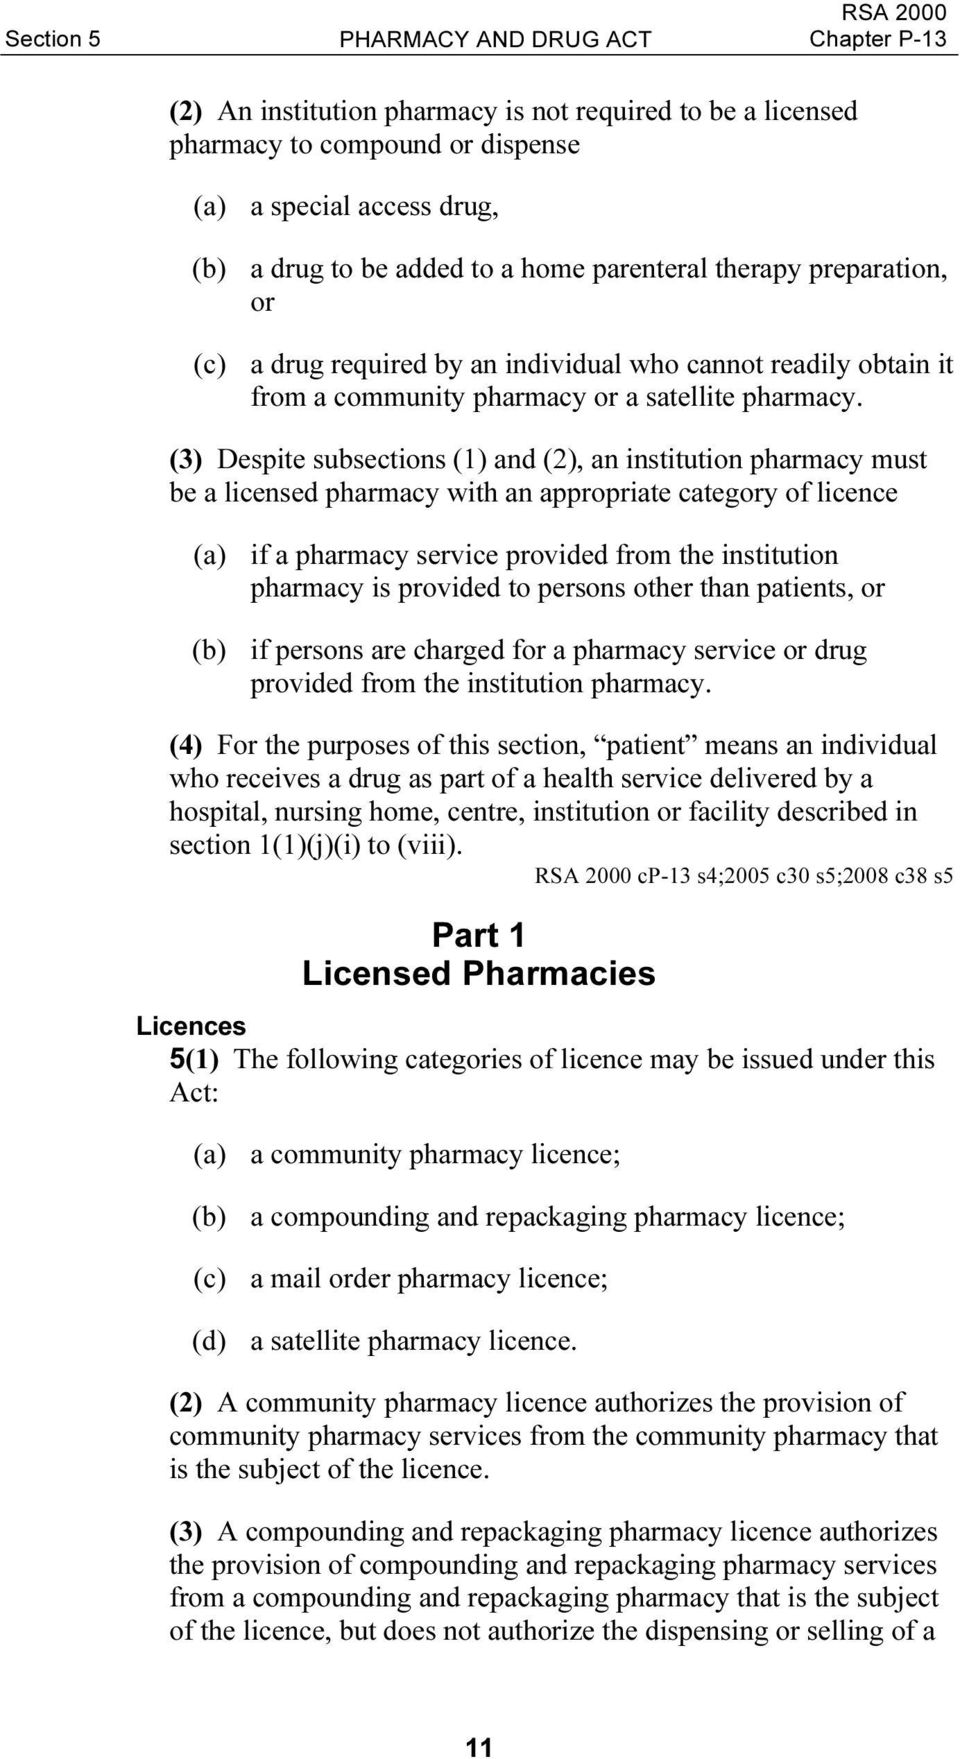 (3) Despite subsections (1) and (2), an institution pharmacy must be a licensed pharmacy with an appropriate category of licence (a) if a pharmacy service provided from the institution pharmacy is